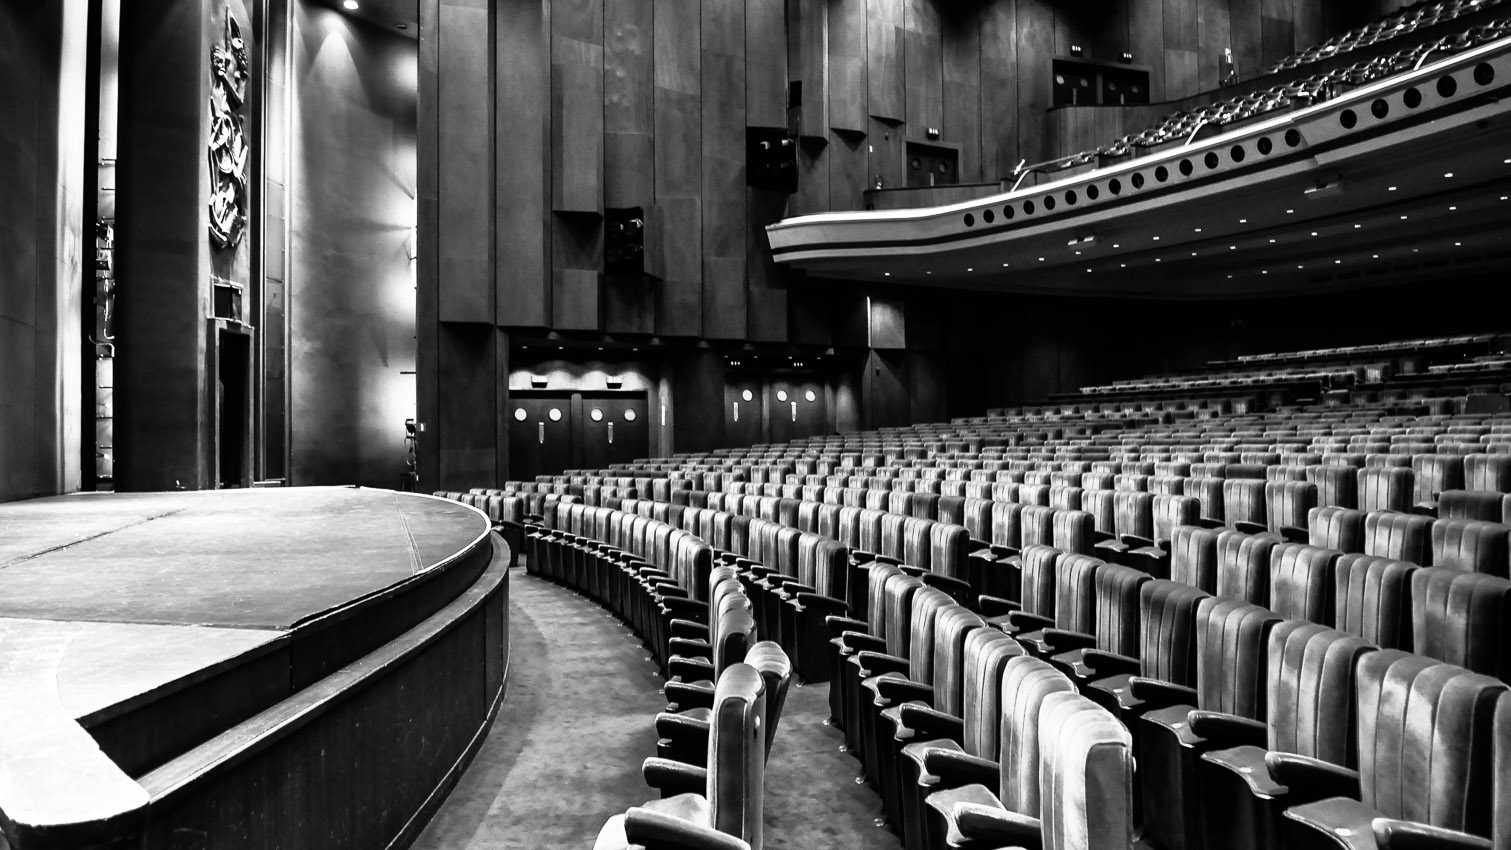 06-salle-theatre-concert-location-decors-film-cinema-photo-belgium-bruxelles